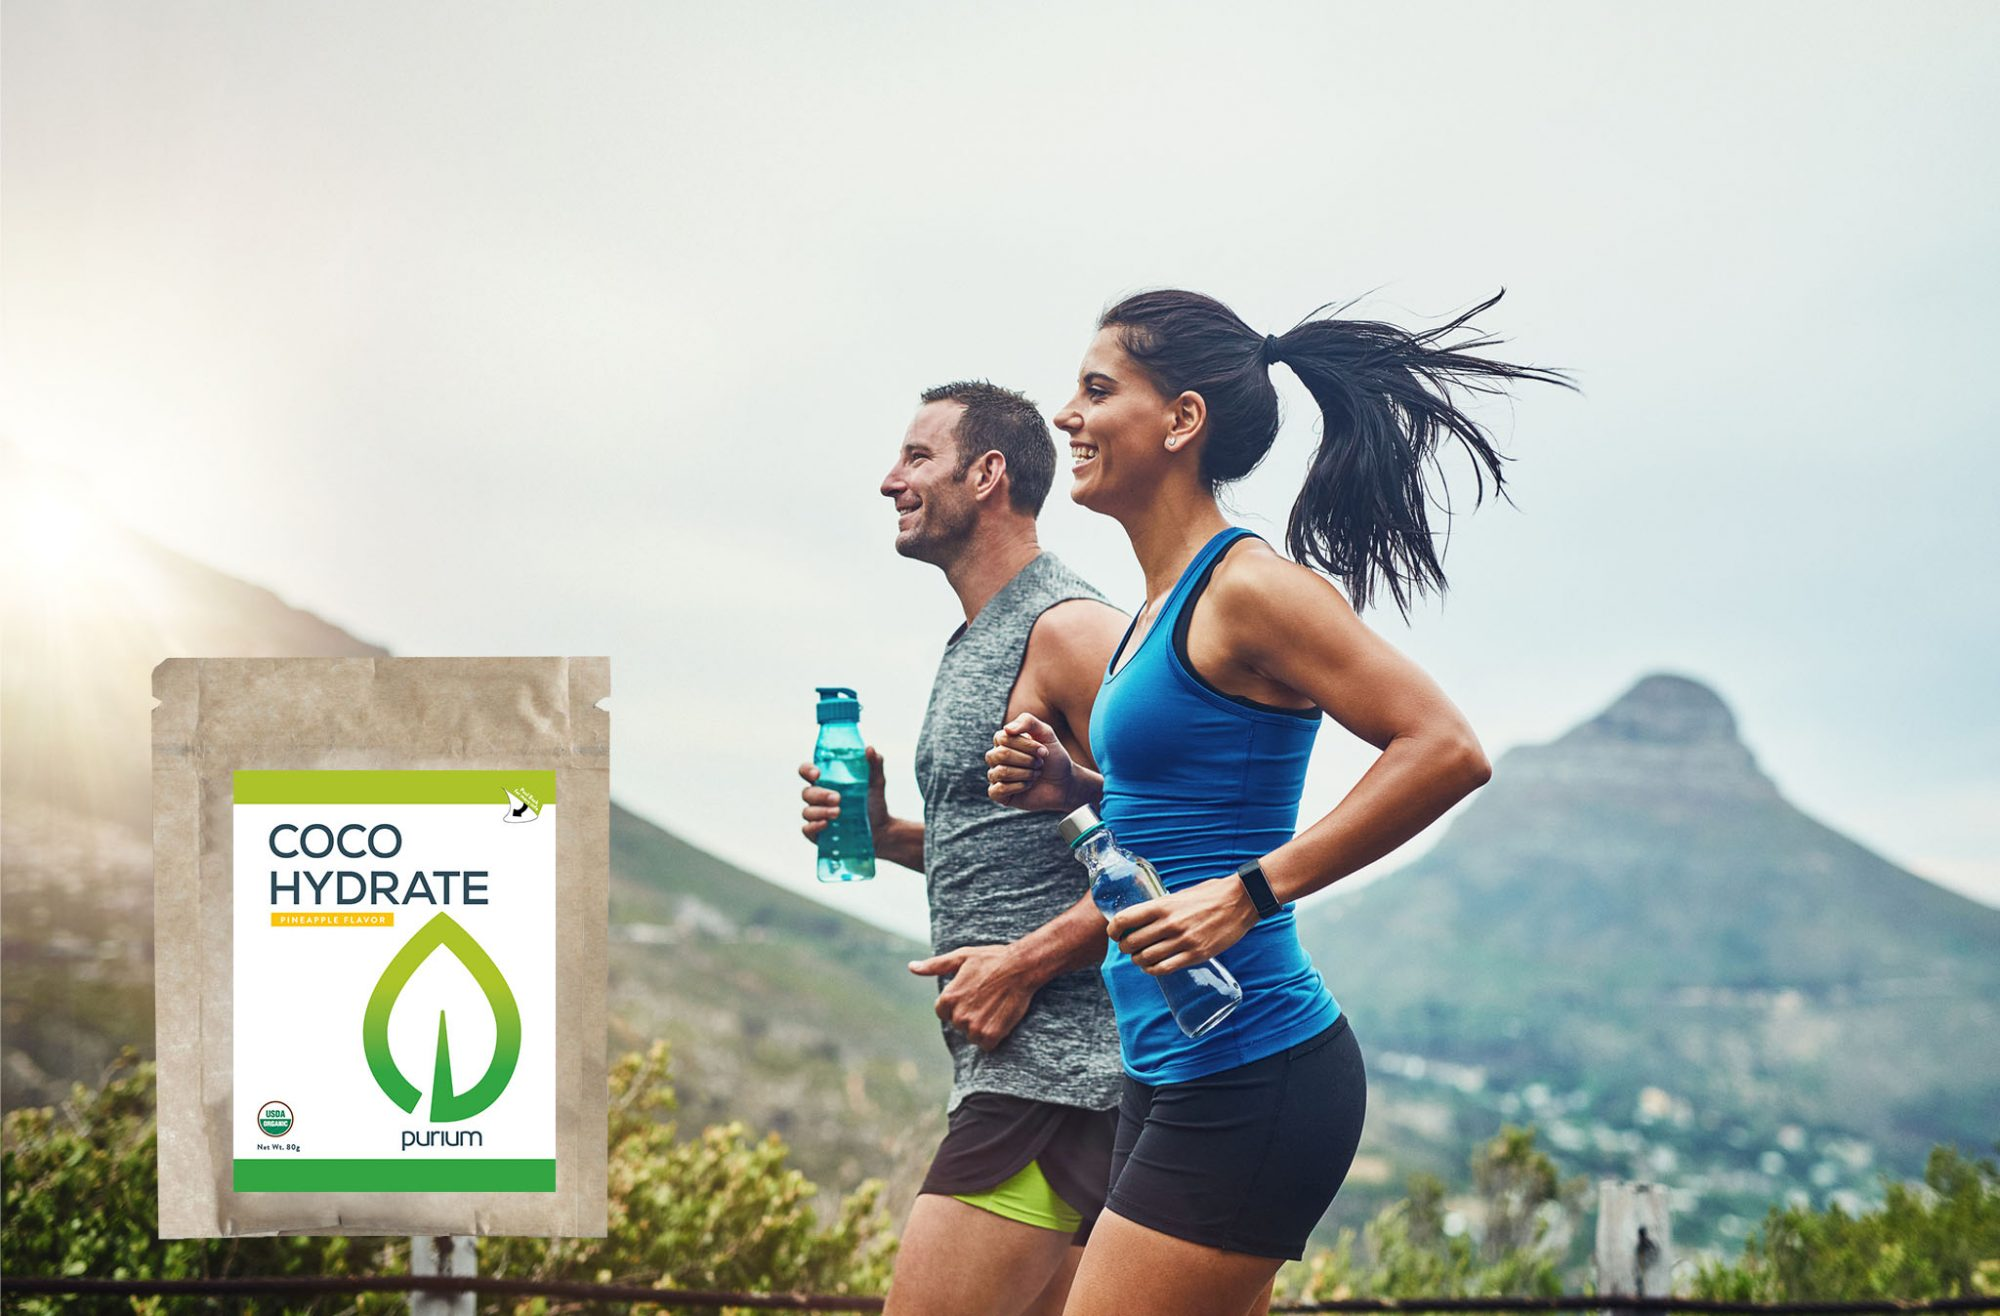 Coco Hydrate: All Day Hydration